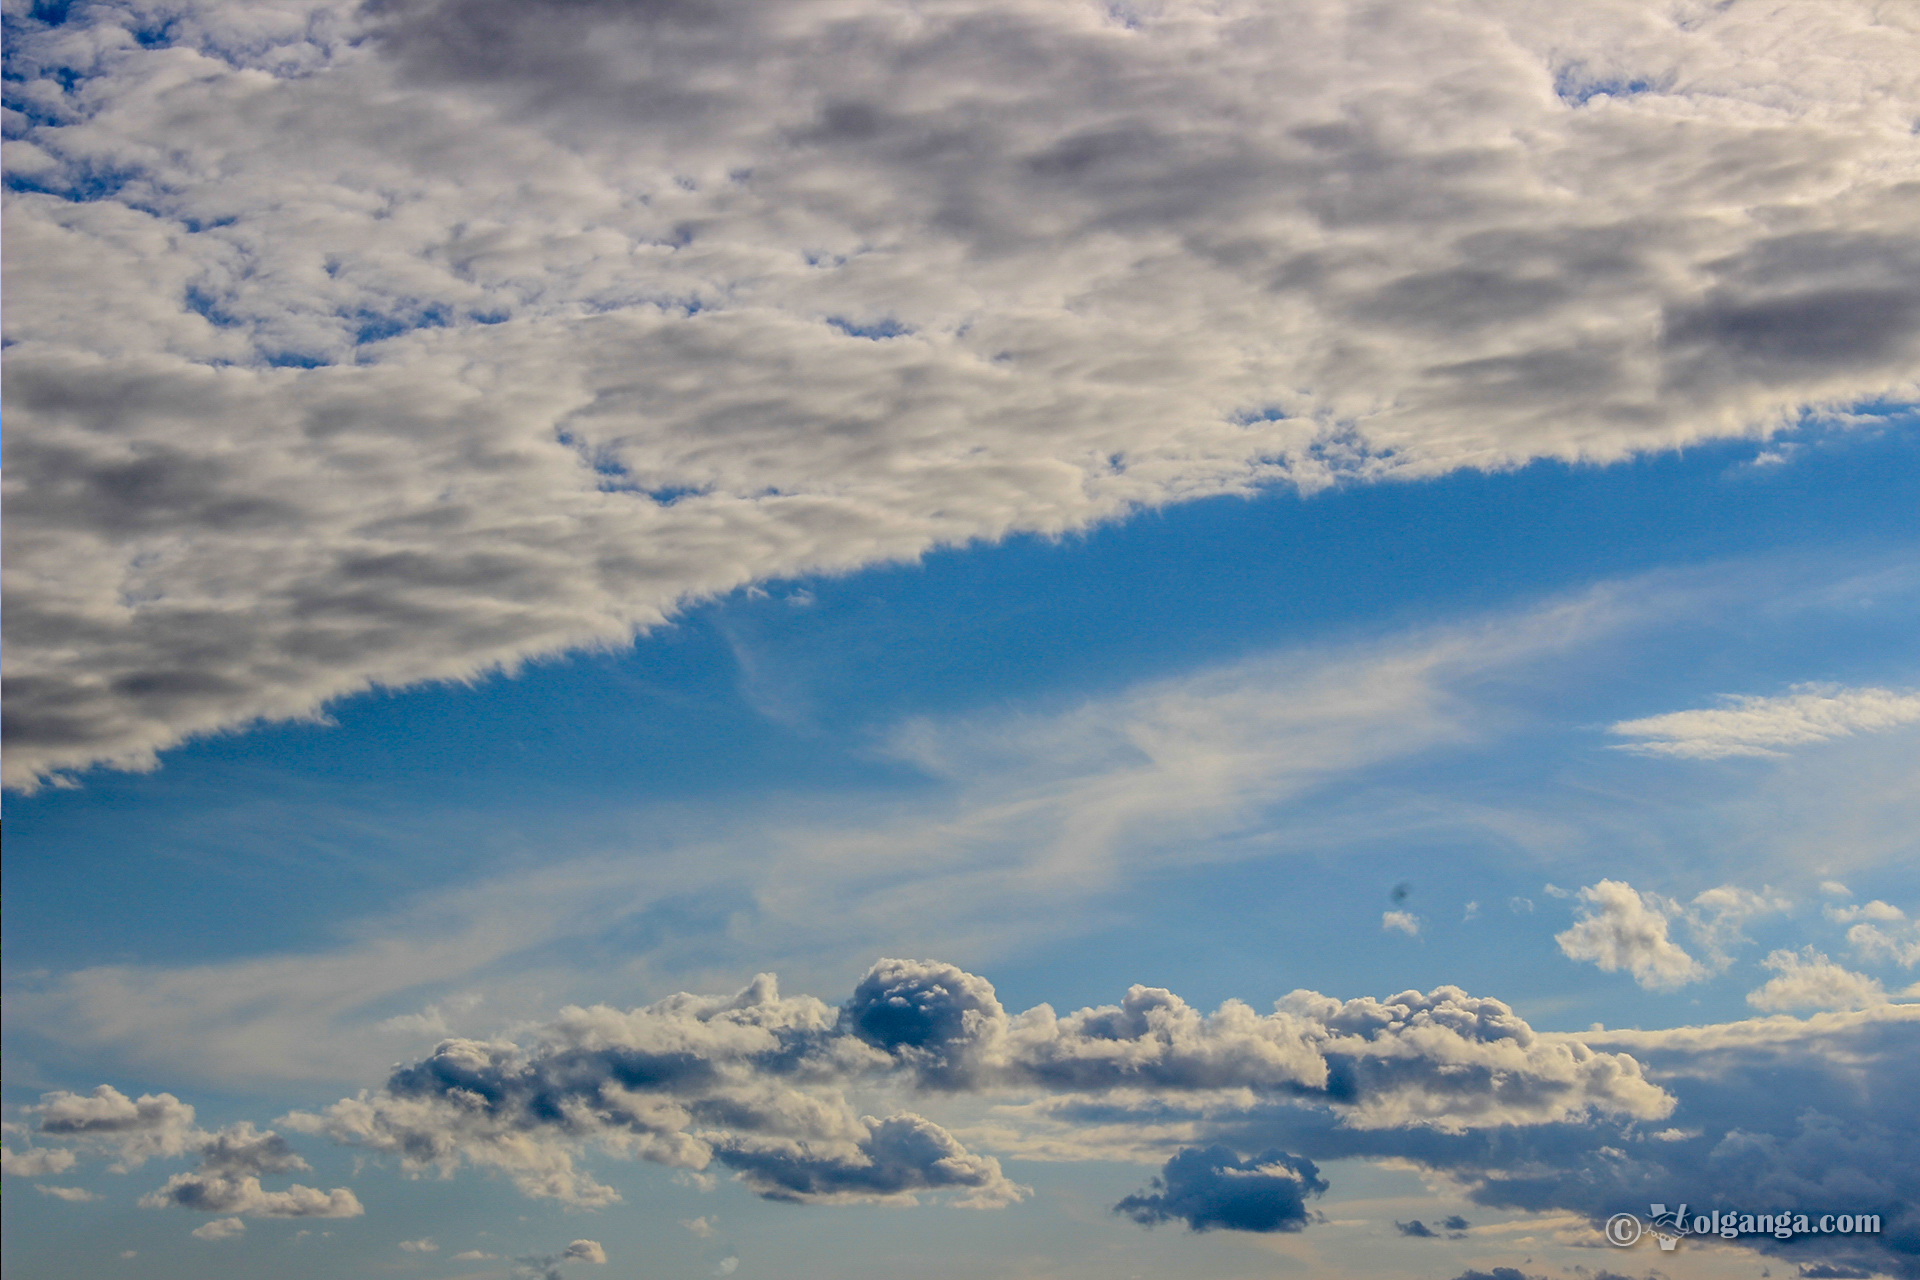 Emotion Hd Wallpapers: Moods & Emotions Of Sky (HD Wallpapers - Exclusive)